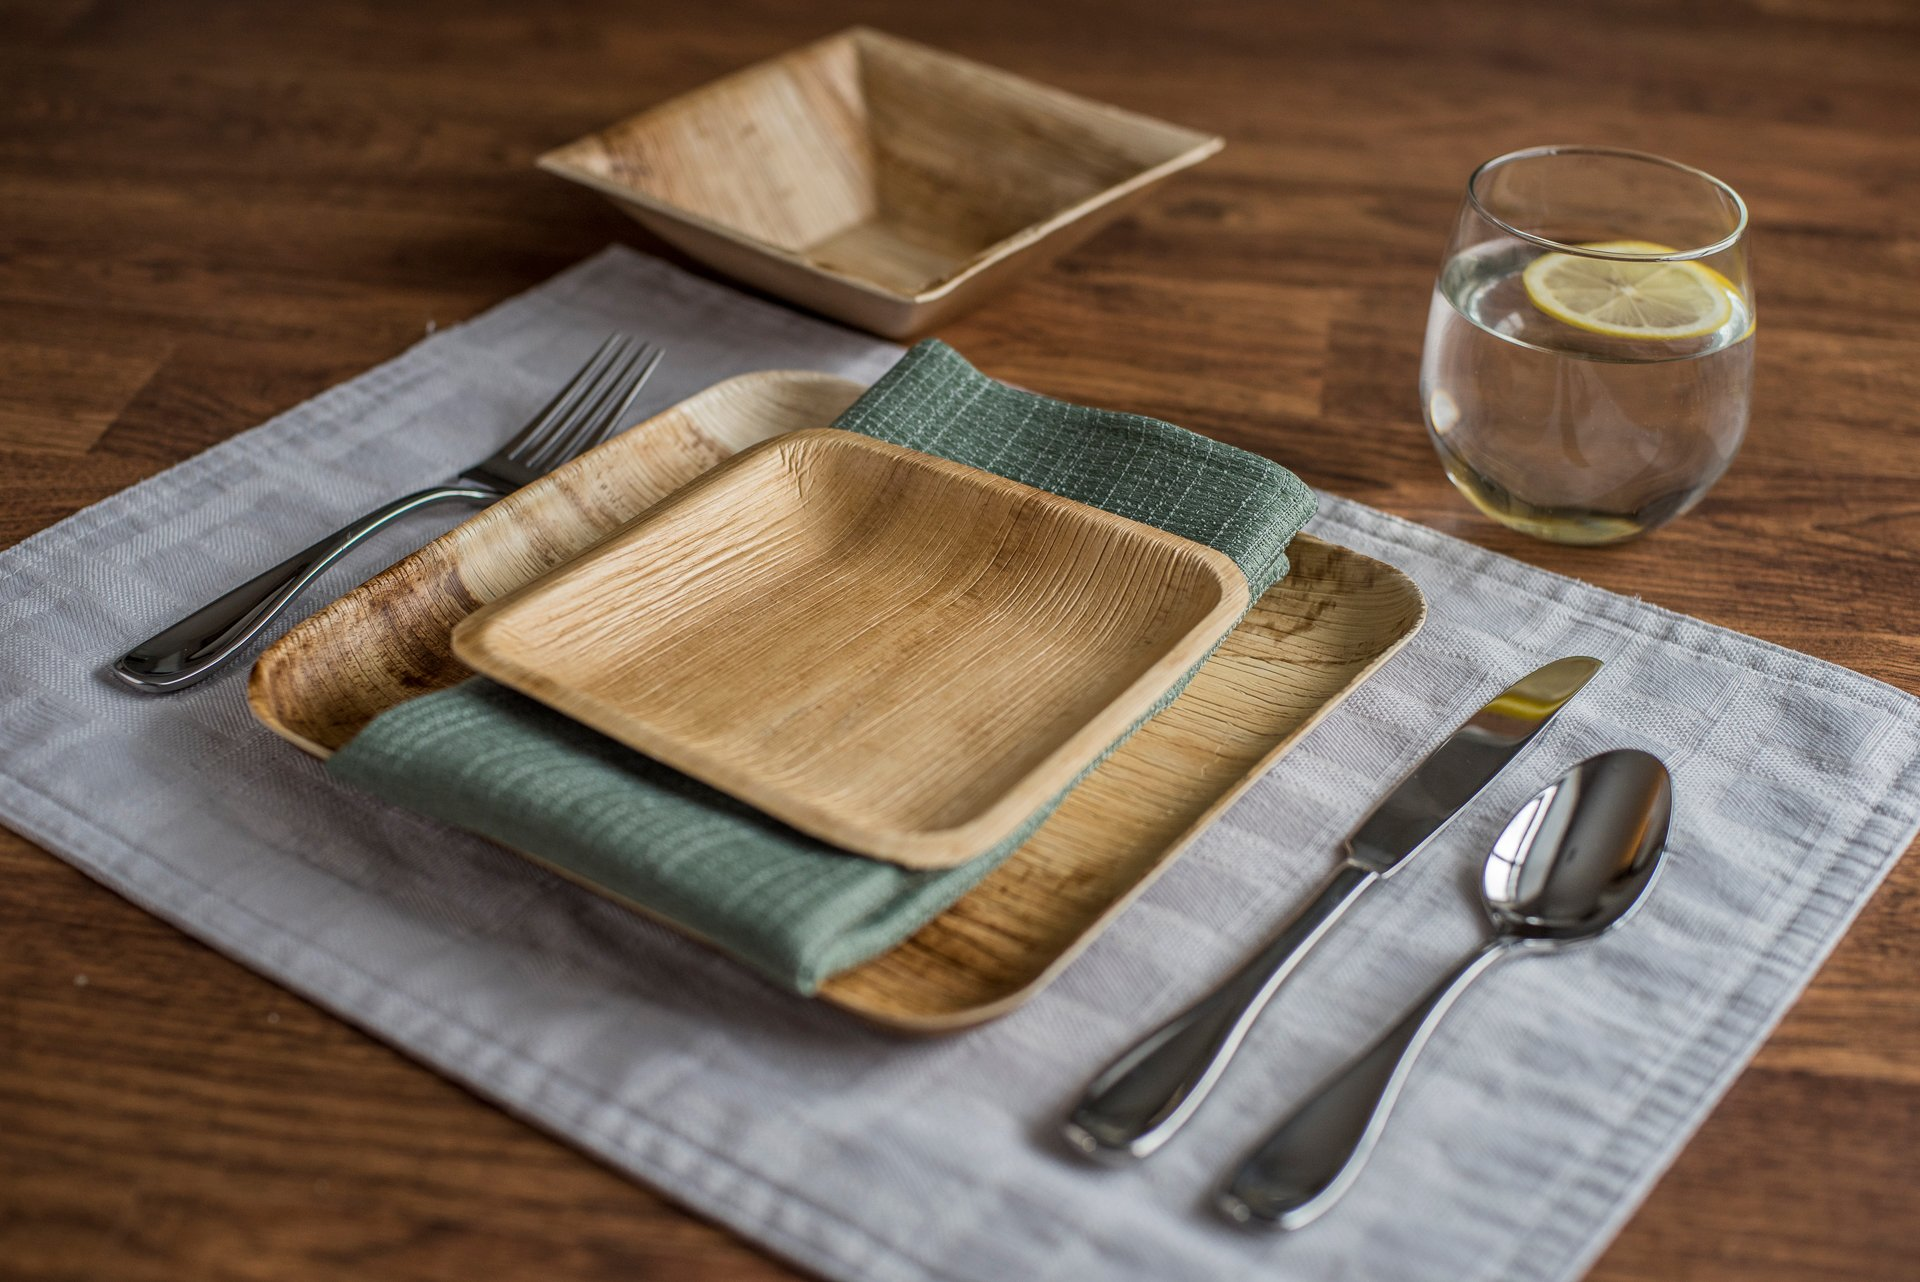 """9"""" Square Palm Leaf Plates - Pack of 25 - Disposable, Compostable, Natural, Tree Free, Sustainable, Eco-Friendly - Fancy Rustic Party Dinnerware and Utensils Like Wood, Bamboo by Clean Earth Goods (Image #5)"""